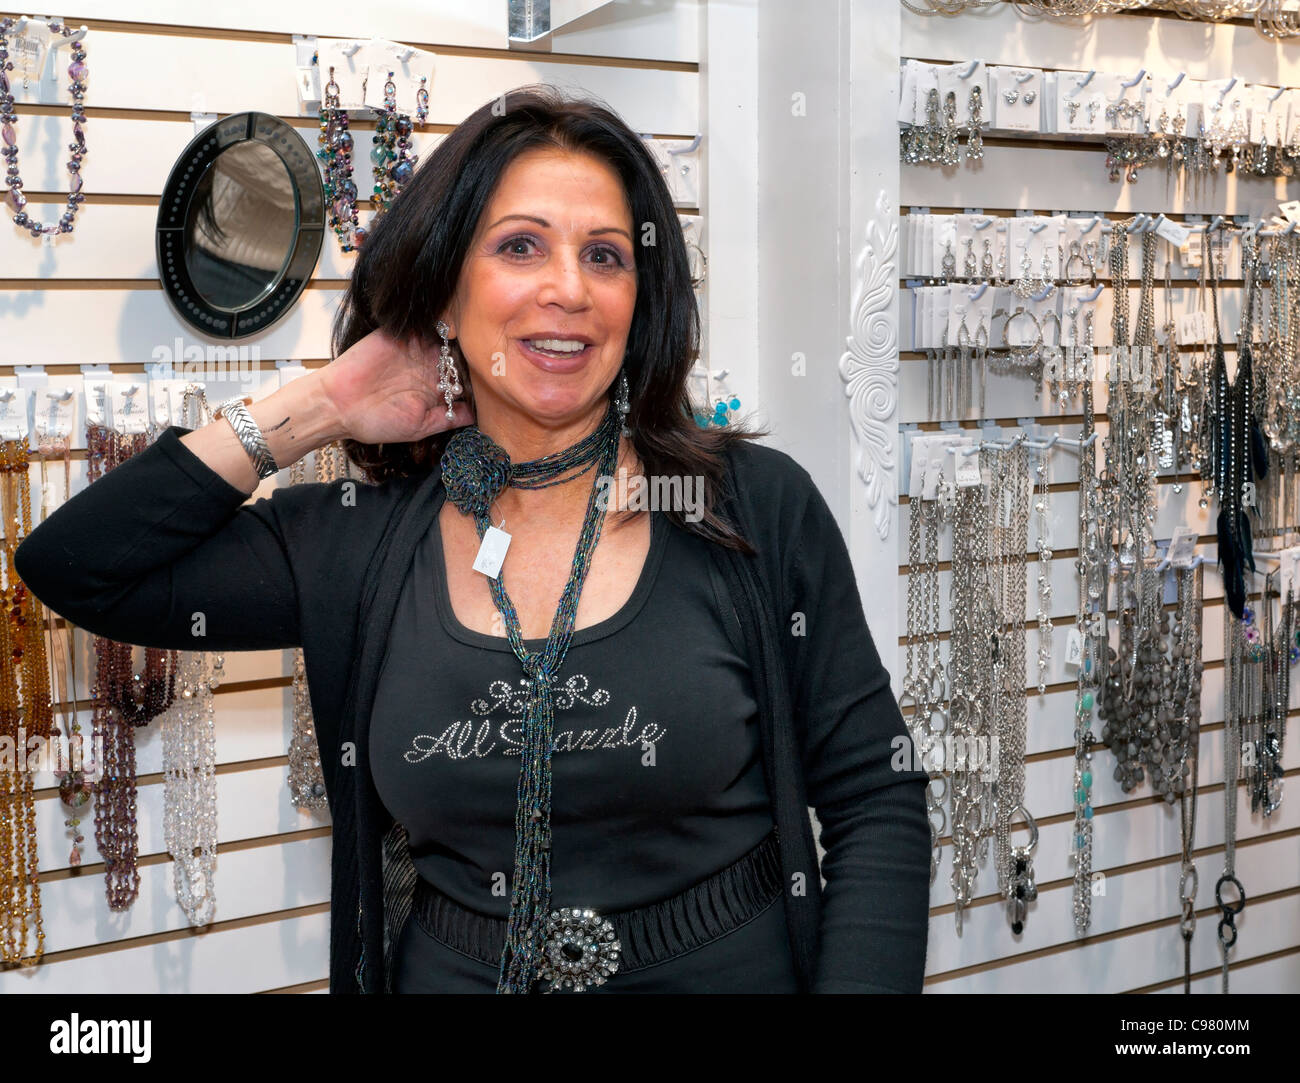 Saleswoman owner of fashion jewelry store showing earrings and necklace she's wearing, All Dazzle, Merrick, - Stock Image